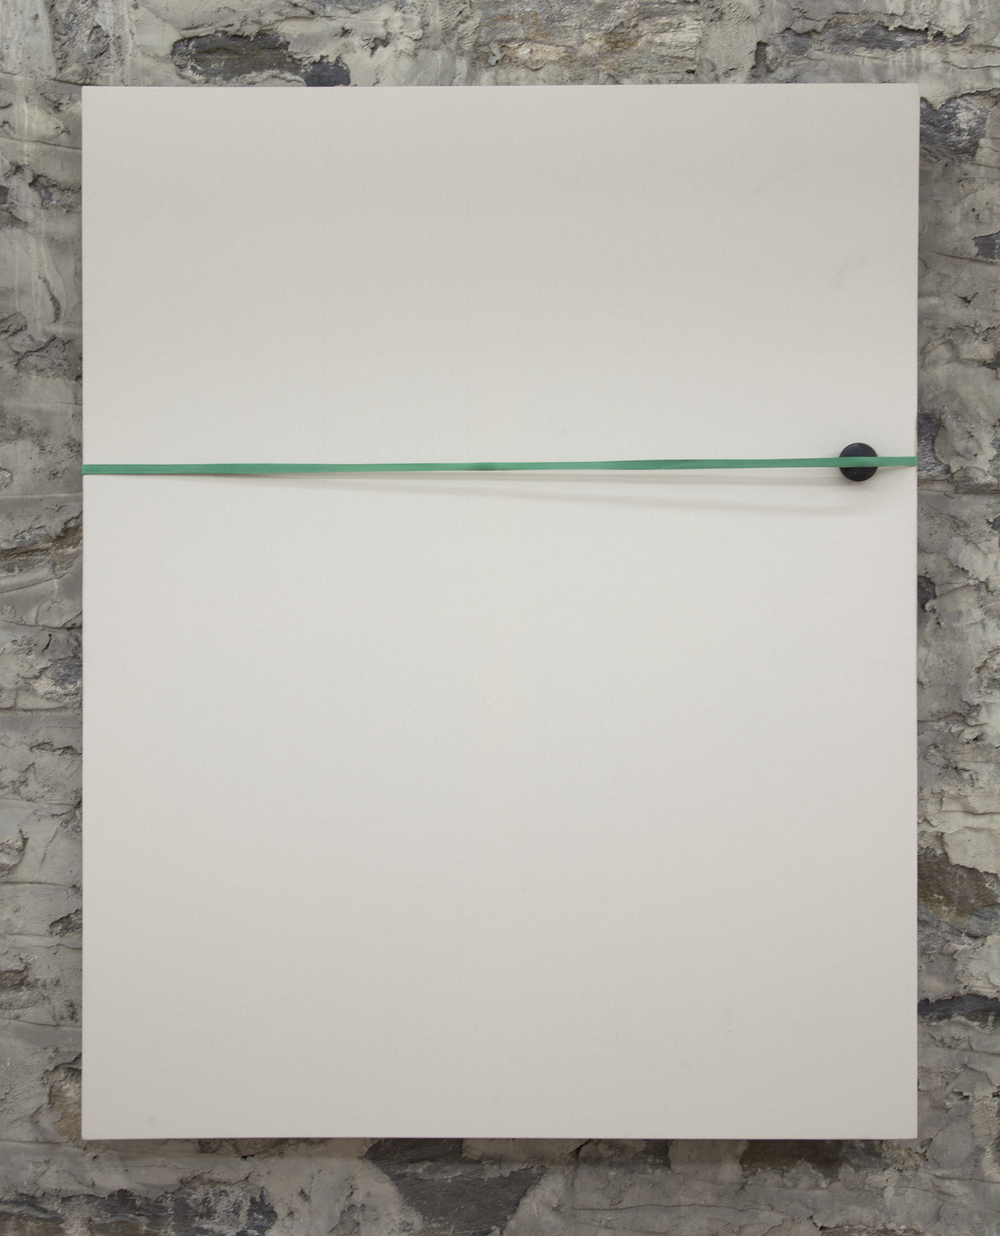 The Gap 2013  Industrial rubber band, dirt and handball on canvas 48 x 60 inches